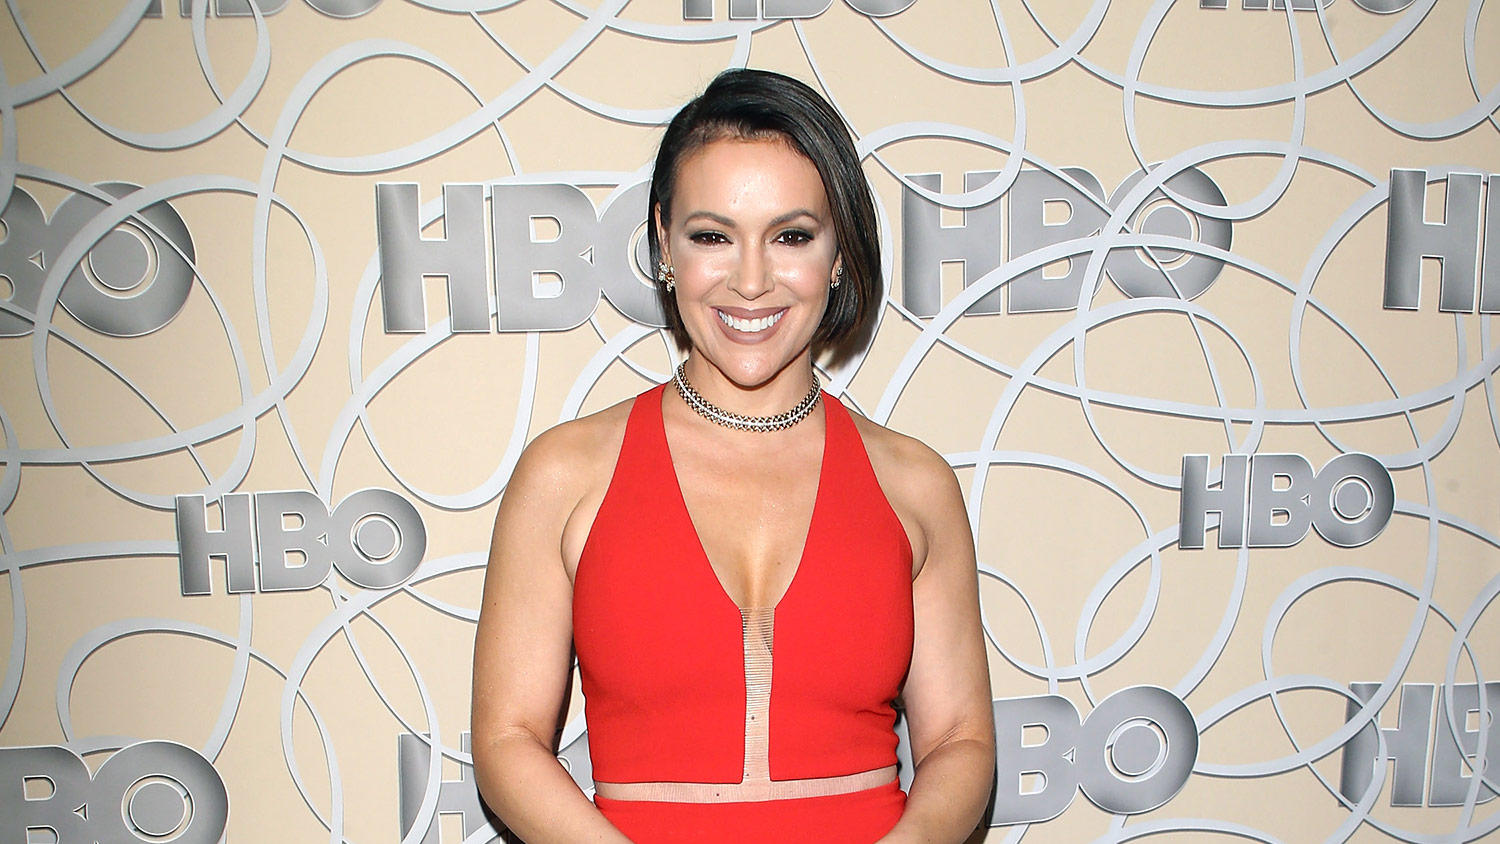 Alyssa Milano Talks About Her Body Image Post-Kids: 'The Female Body Is the Most Amazing Machine'